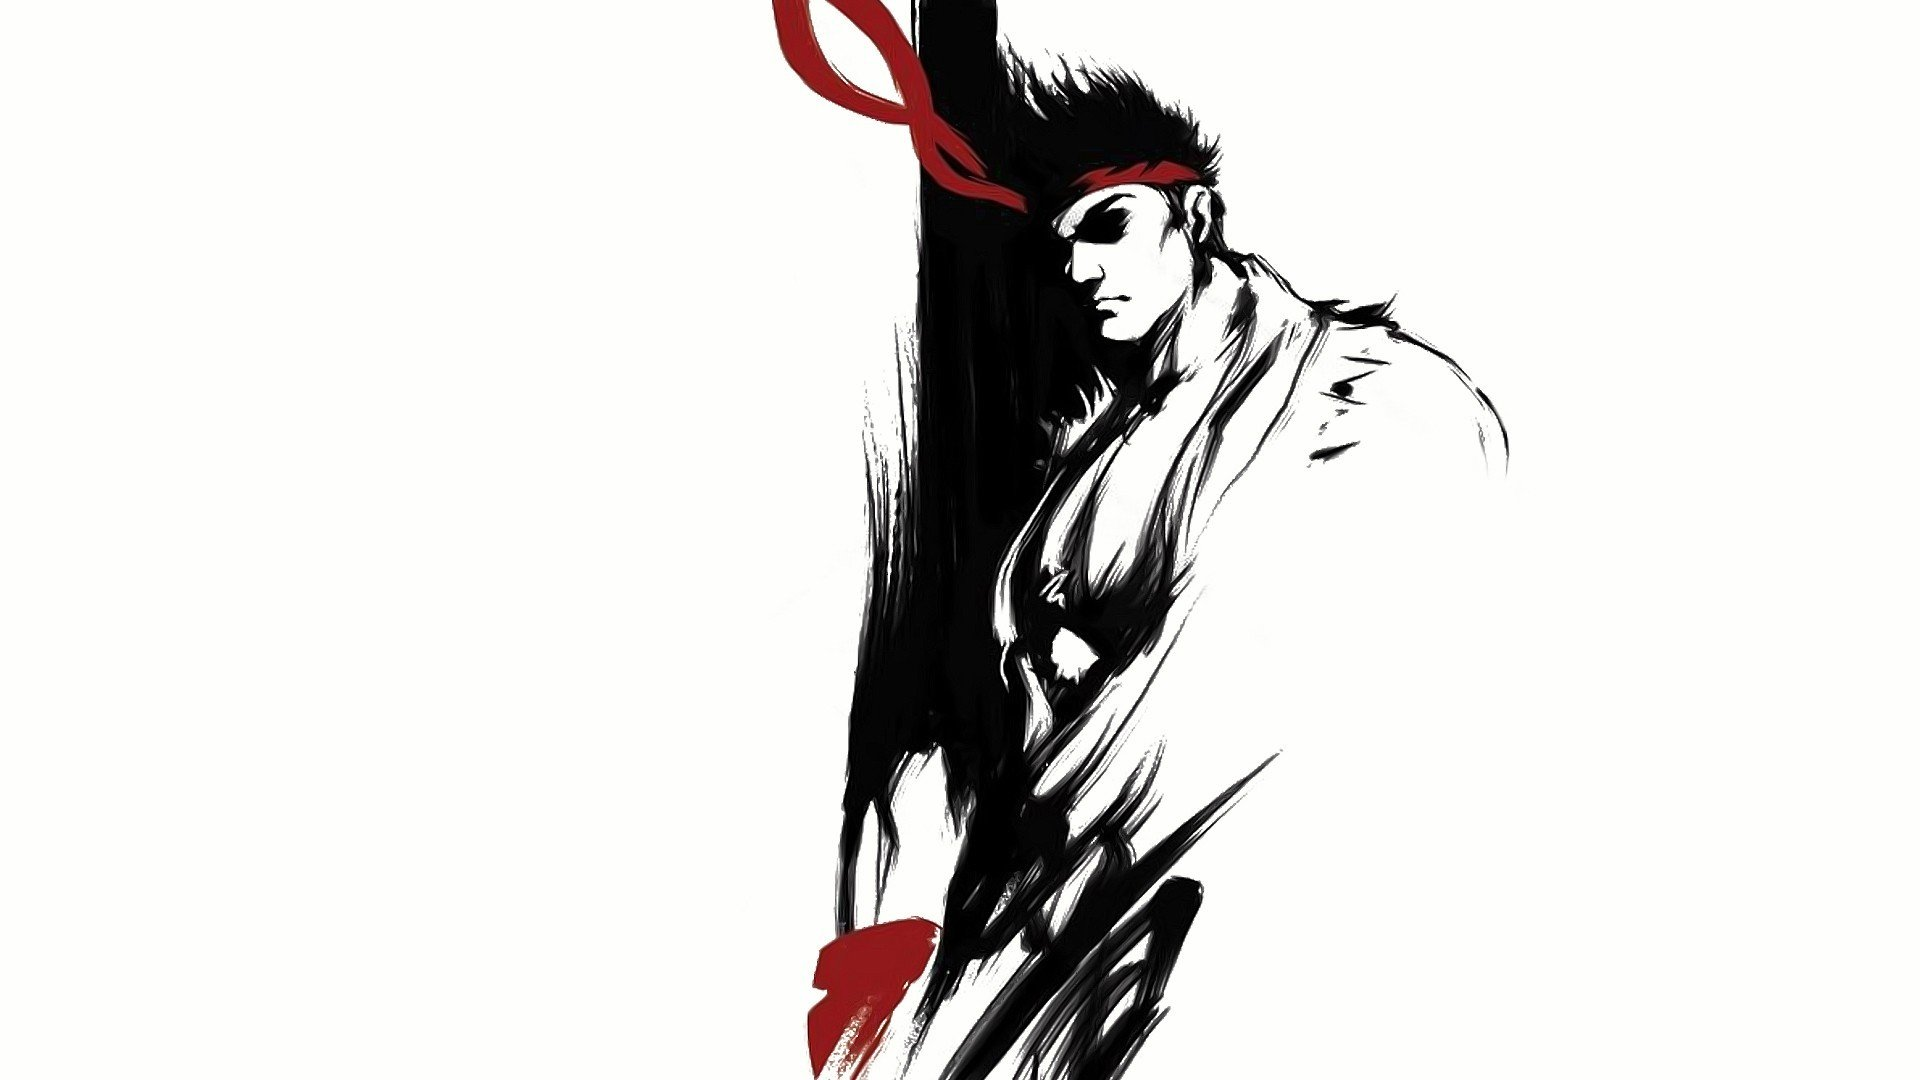 Ryu Street Fighter Hd Wallpapers Desktop And Mobile Images